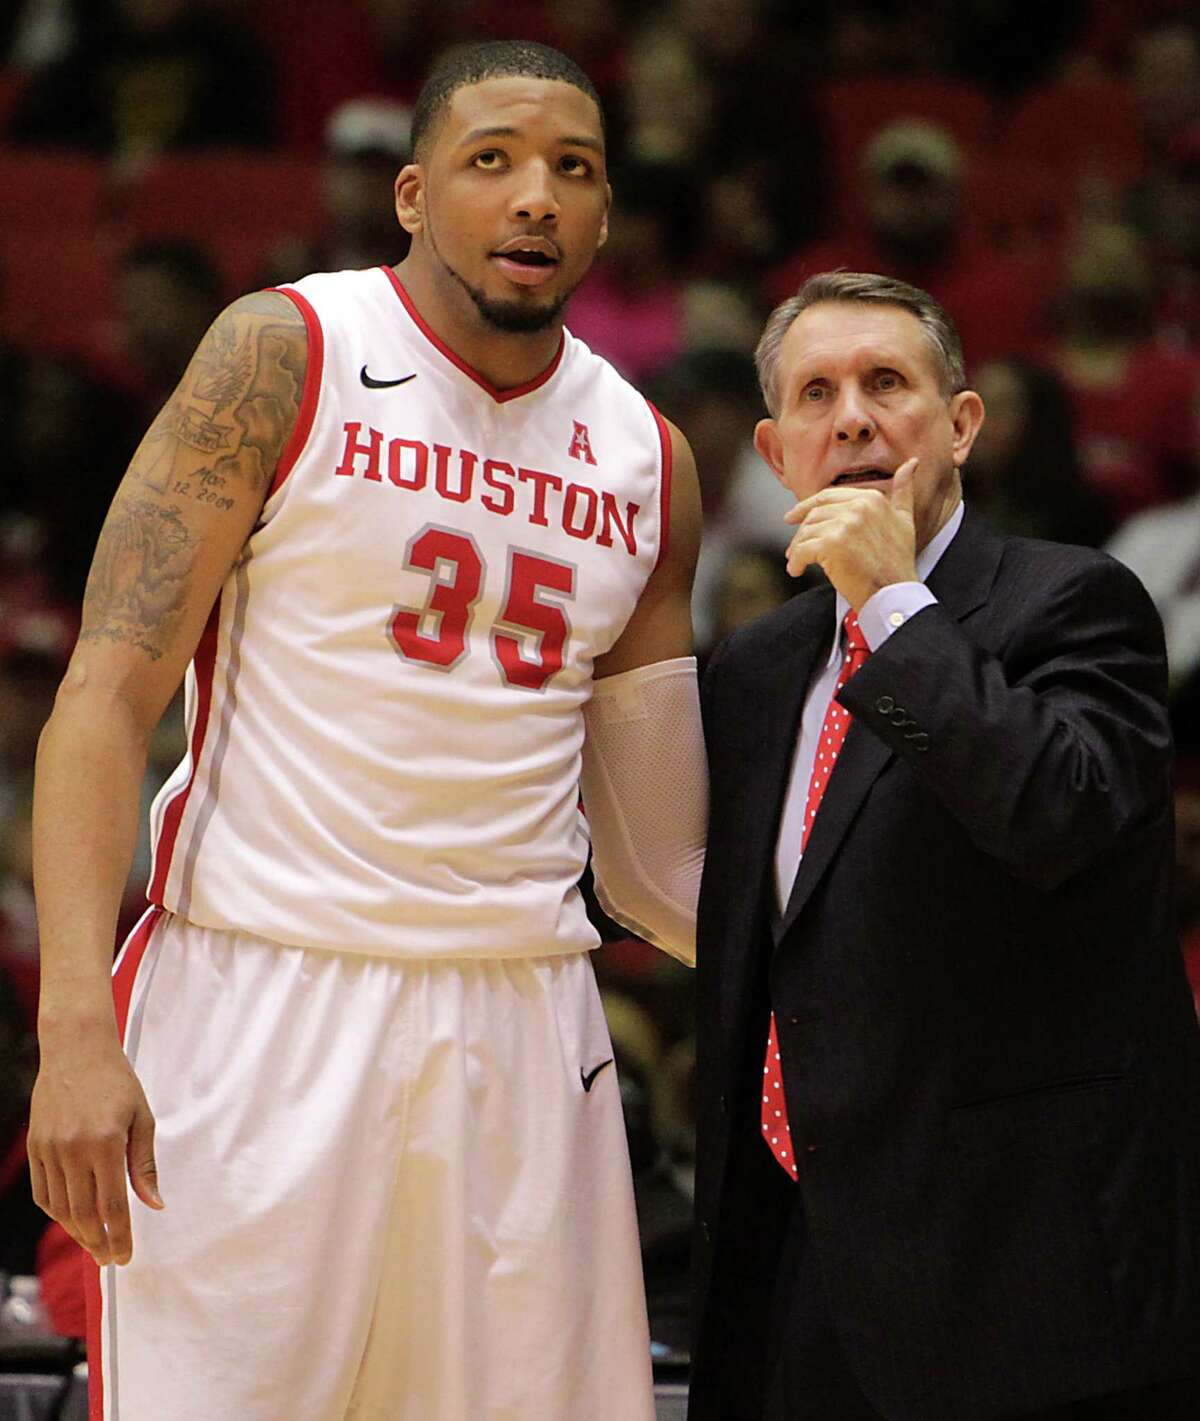 University of Houston forward TaShawn Thomas left, speaks with head coach James Dickey right, during the second half of men's college basketball game action at U of H's Hofheinz Pavilion Wednesday, Feb. 5, 2014, in Houston.